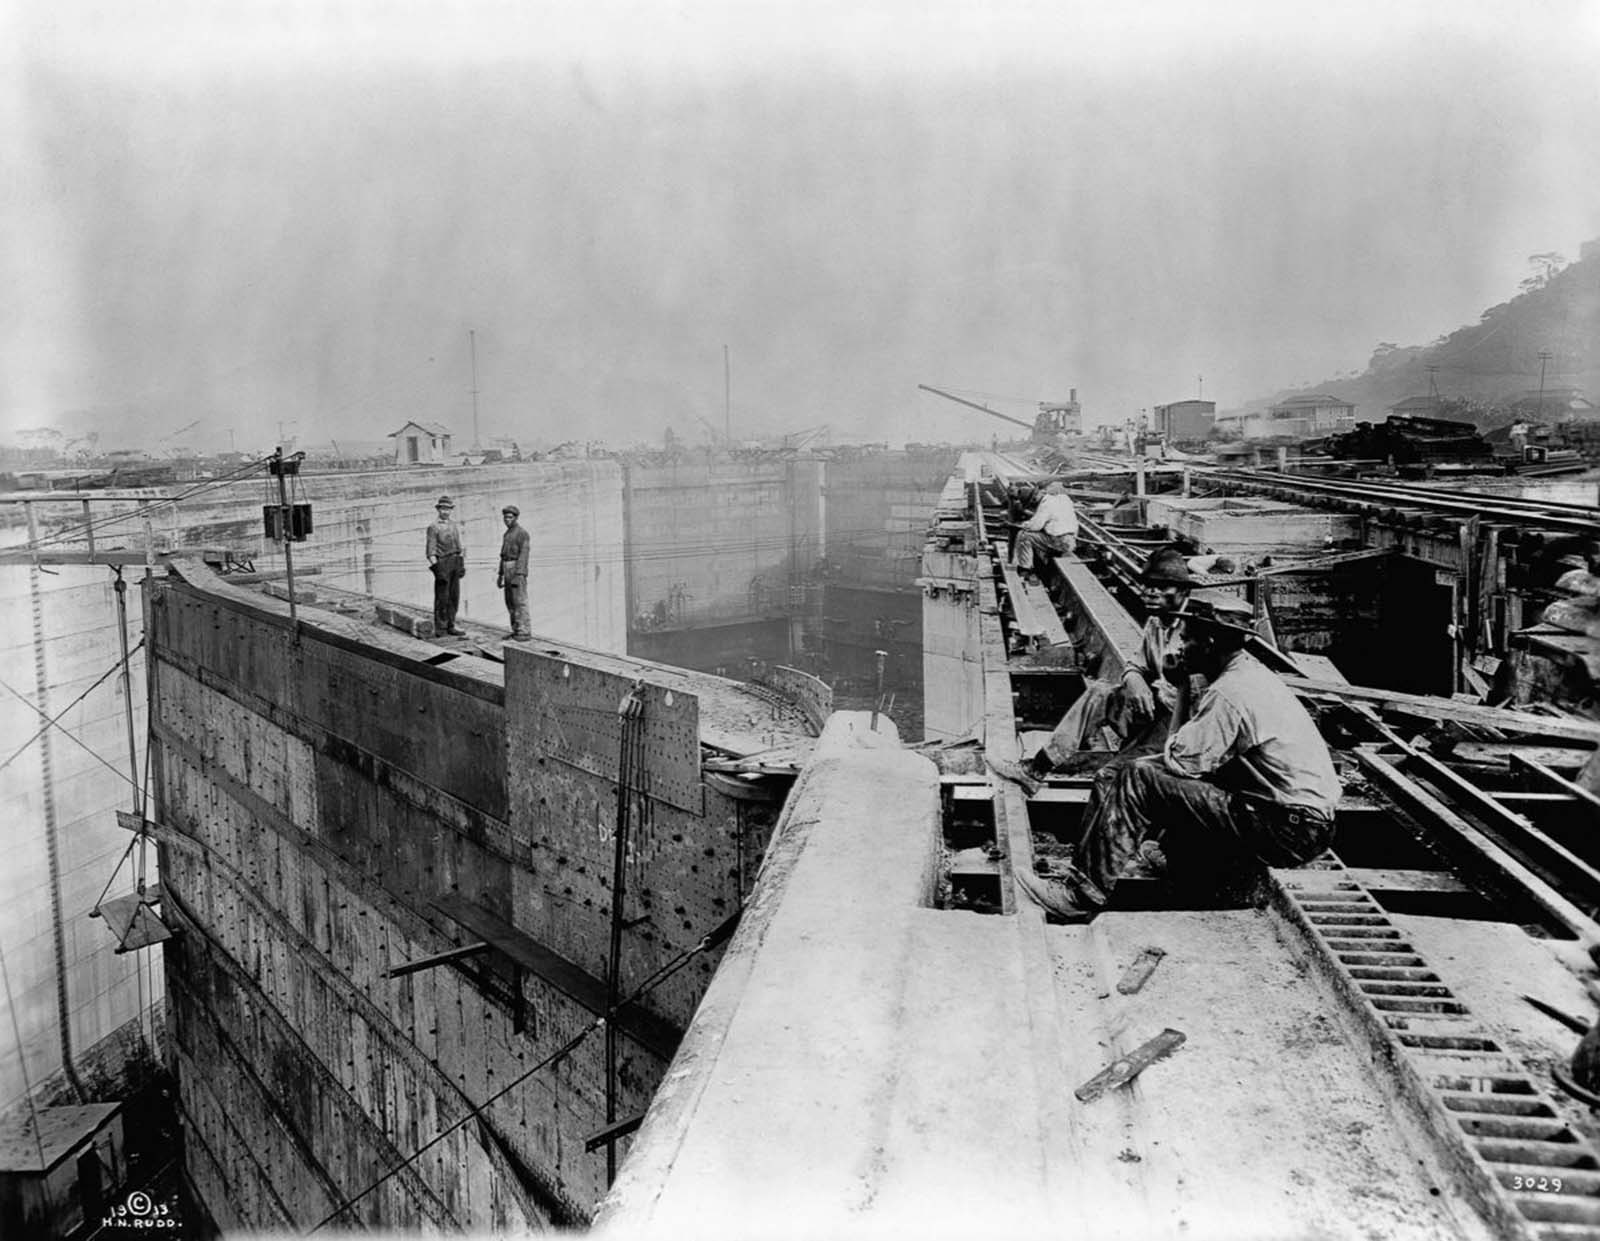 Workers take a break atop the canal locks. 1913.